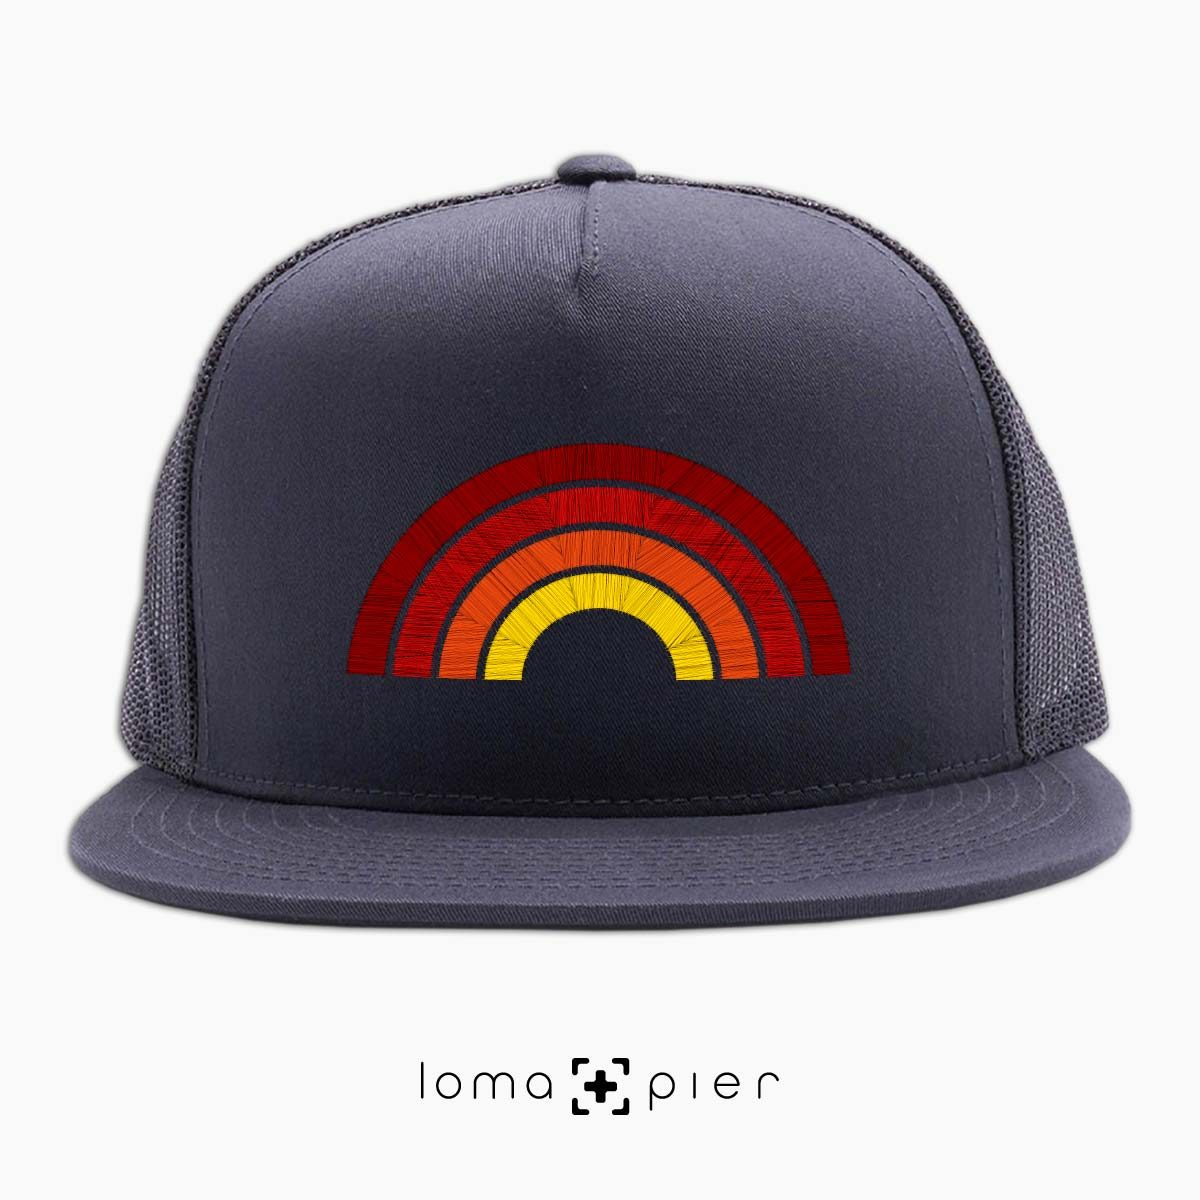 hermosa BEACH RAINBOW netback hat in charcoal by loma+pier hat store